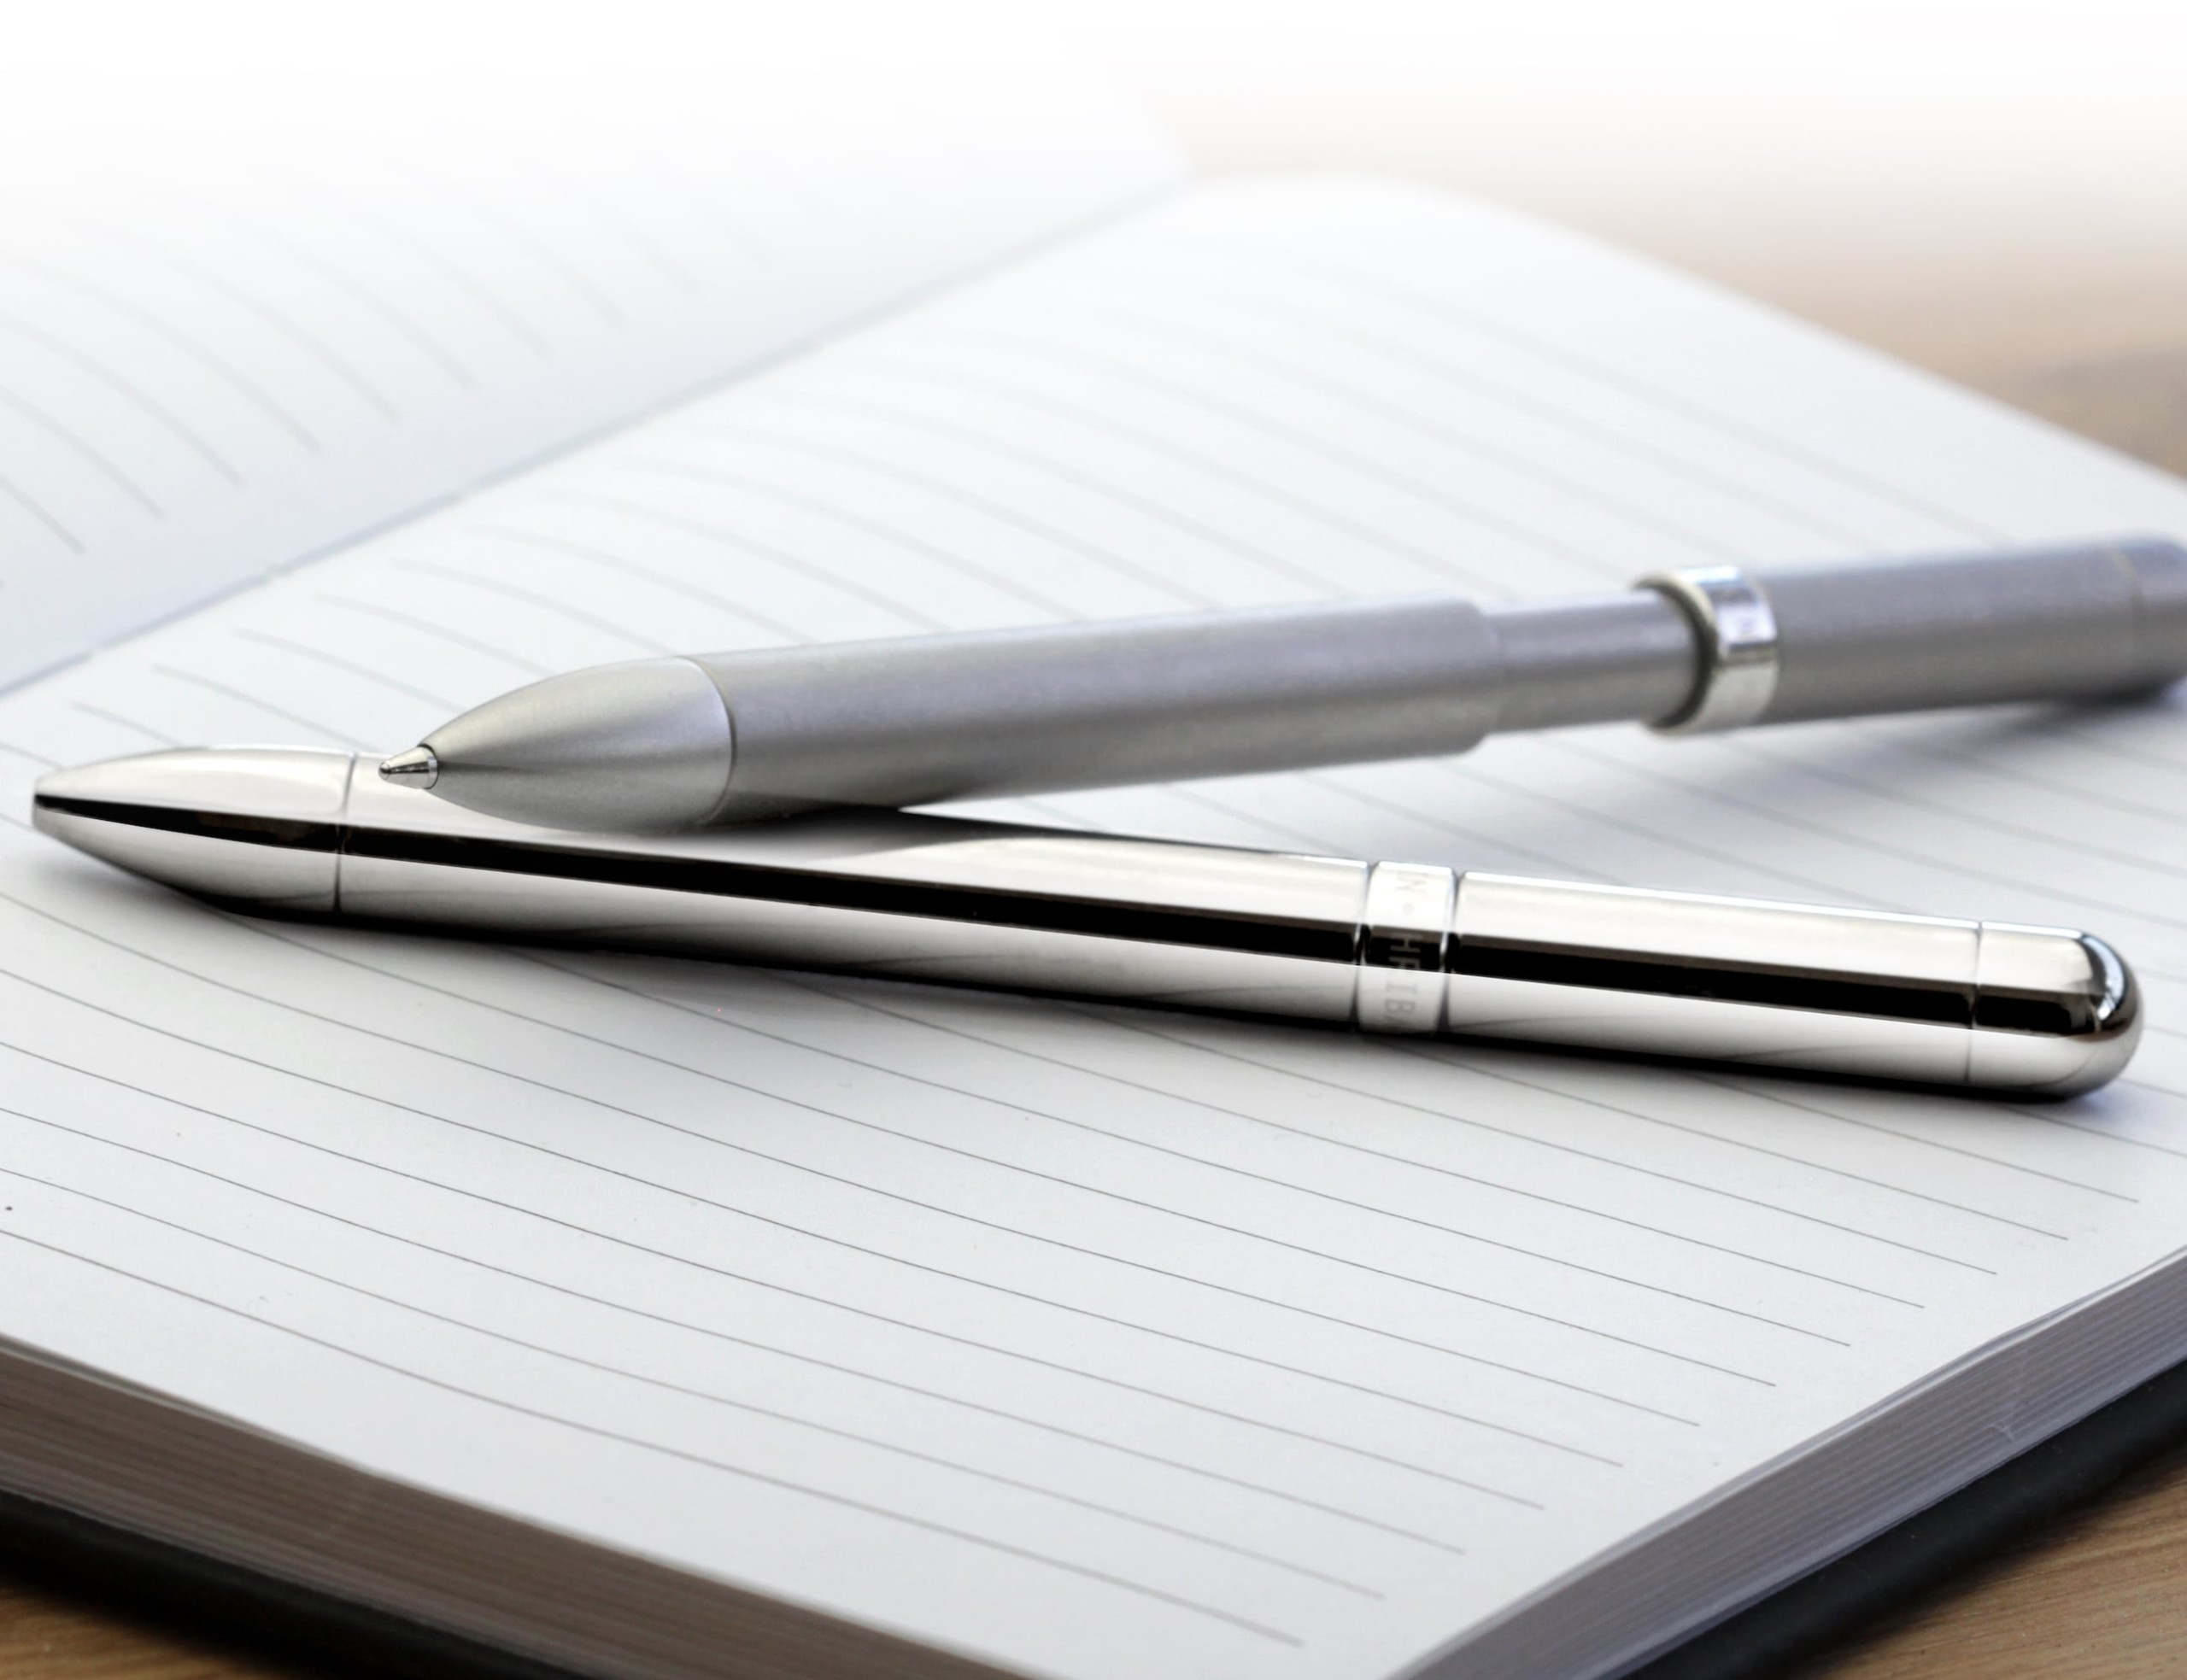 MAGNO-INK Magnetic Anti-Roll Pen has an internal mechanism that keeps it in one place